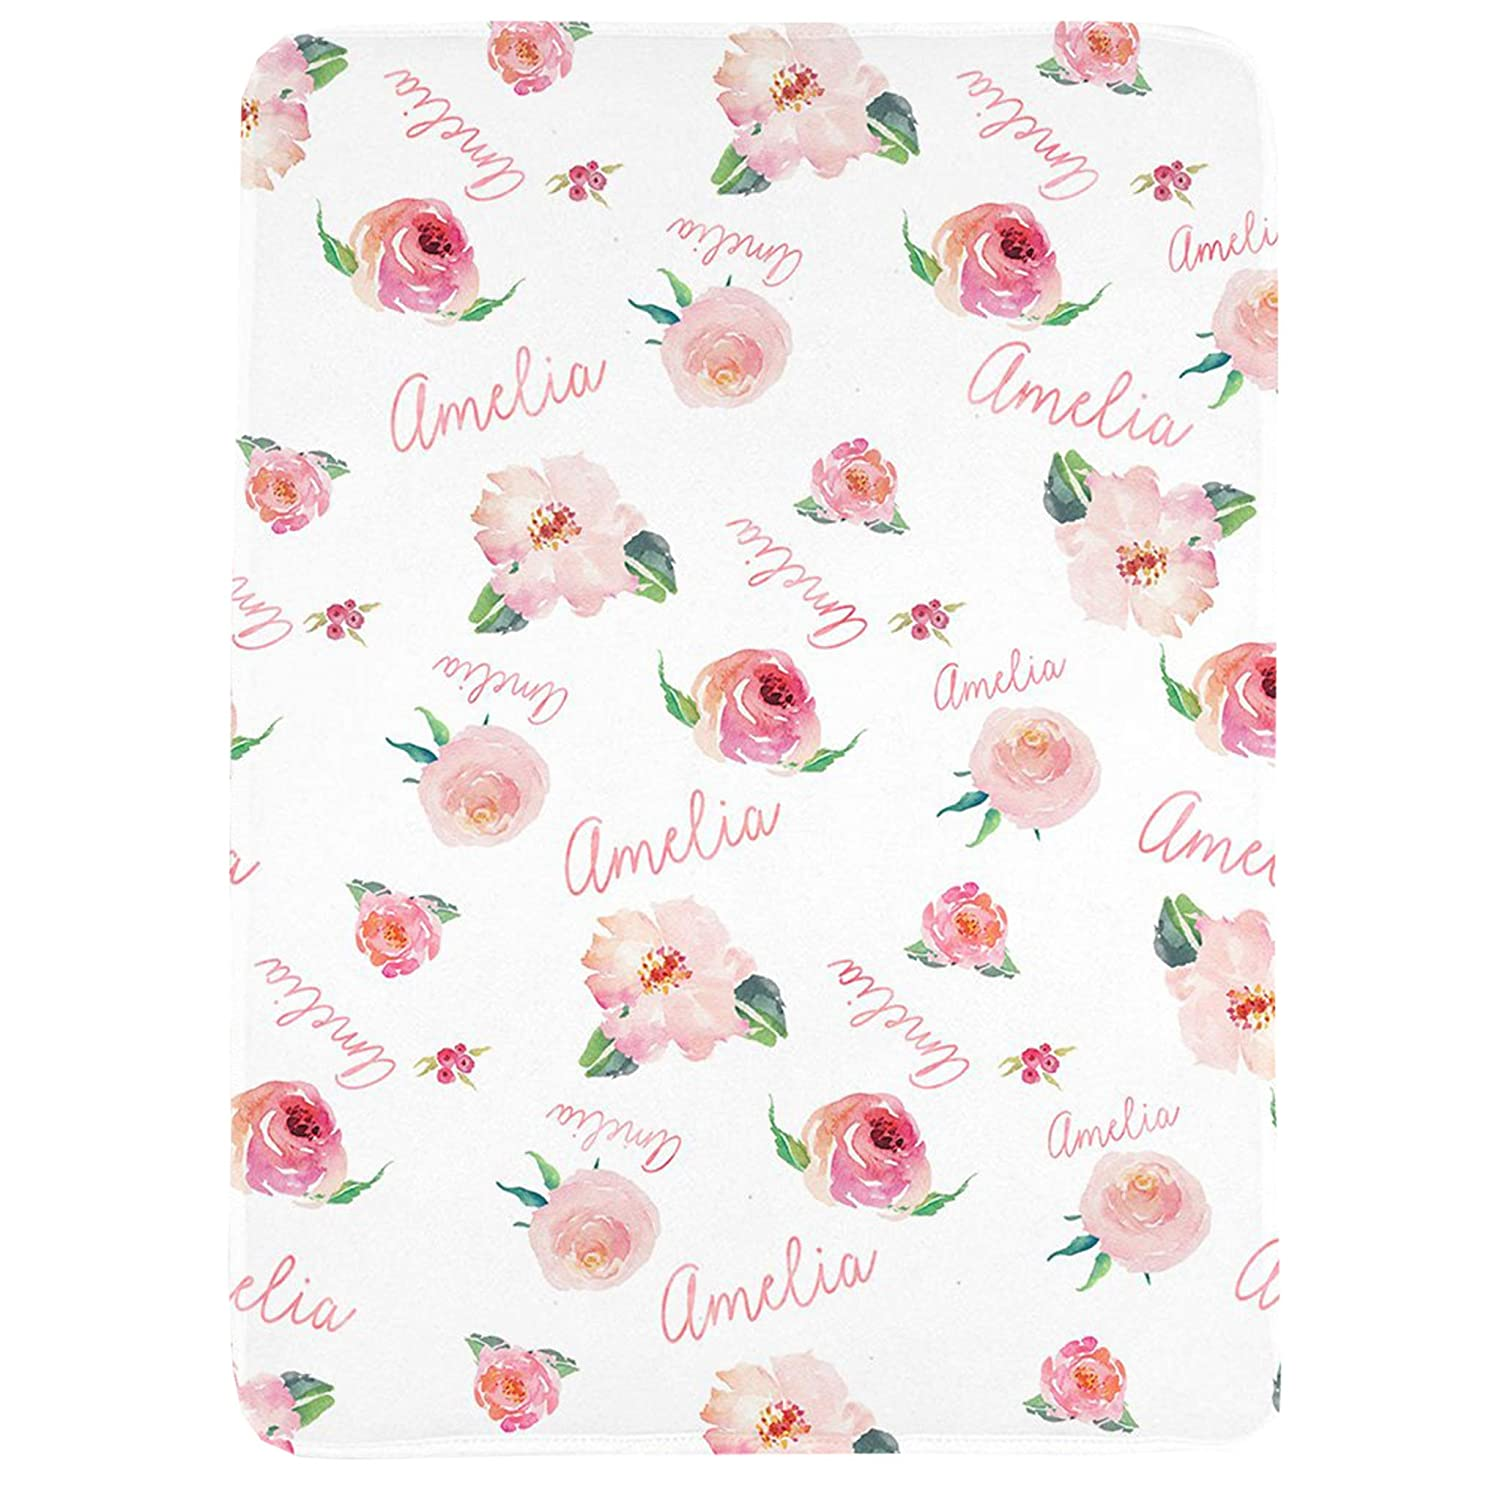 WolfeDesignPDD Personalized Baby Girl Name Blanket, Floral Watercolor Print Coral